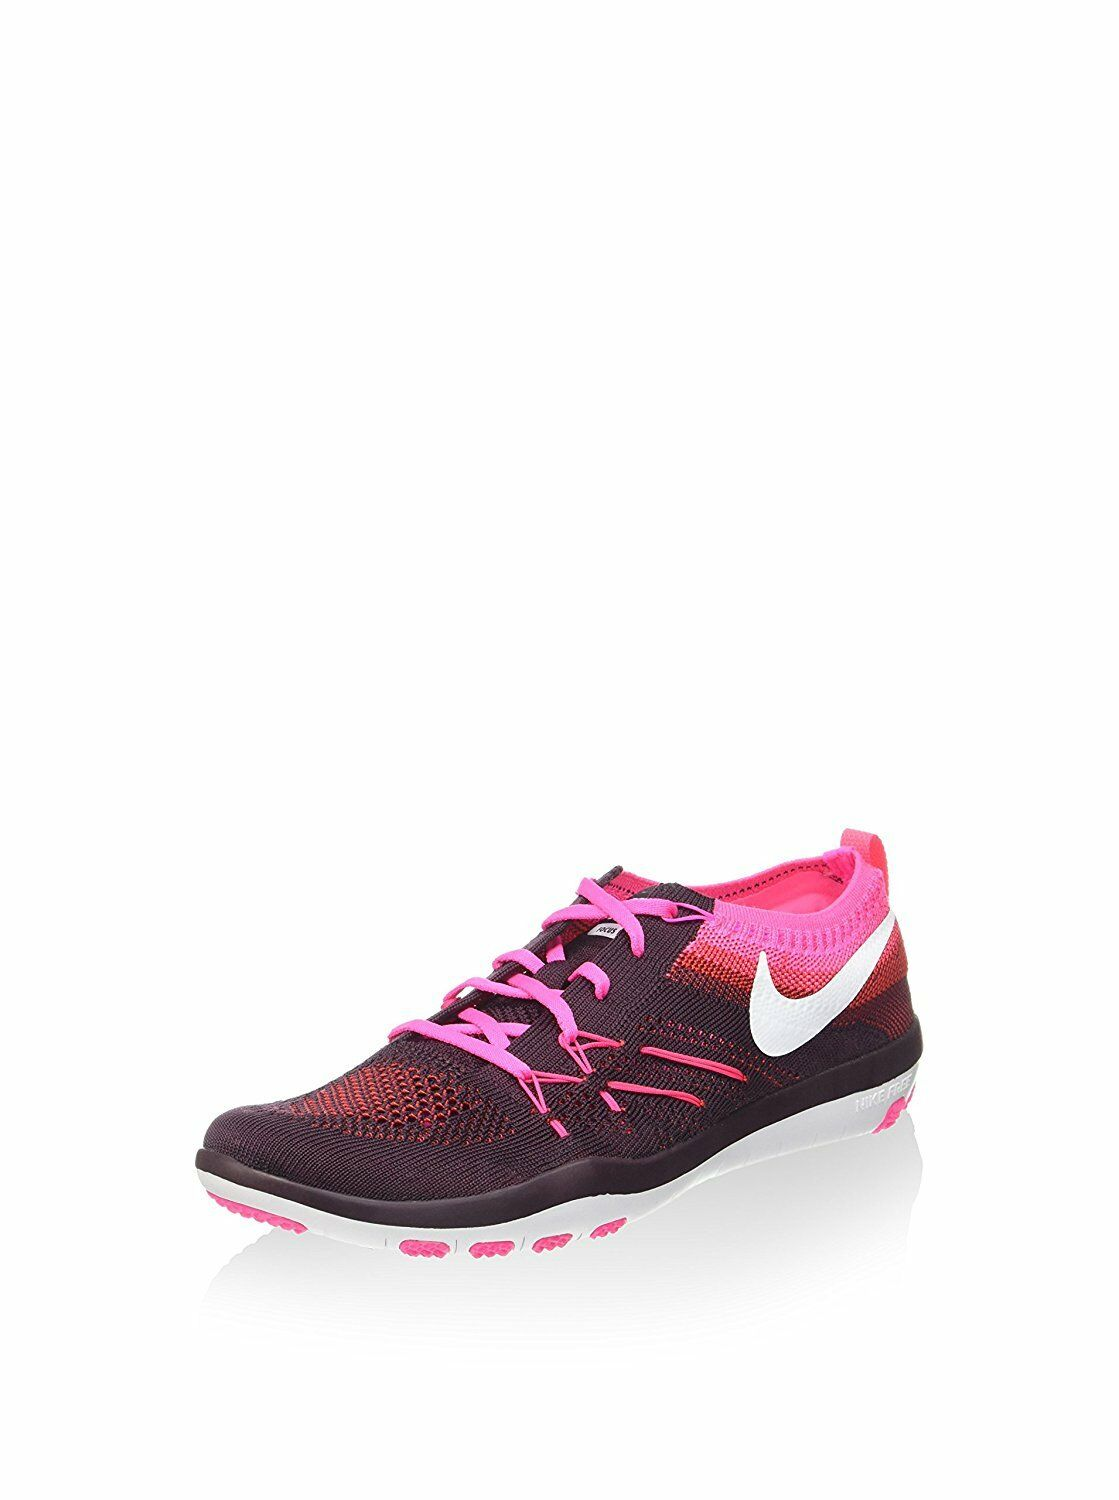 NIKE WOMENS FREE TR FOCUS FLYKNIT TRAINING SHOES (RETAIL)